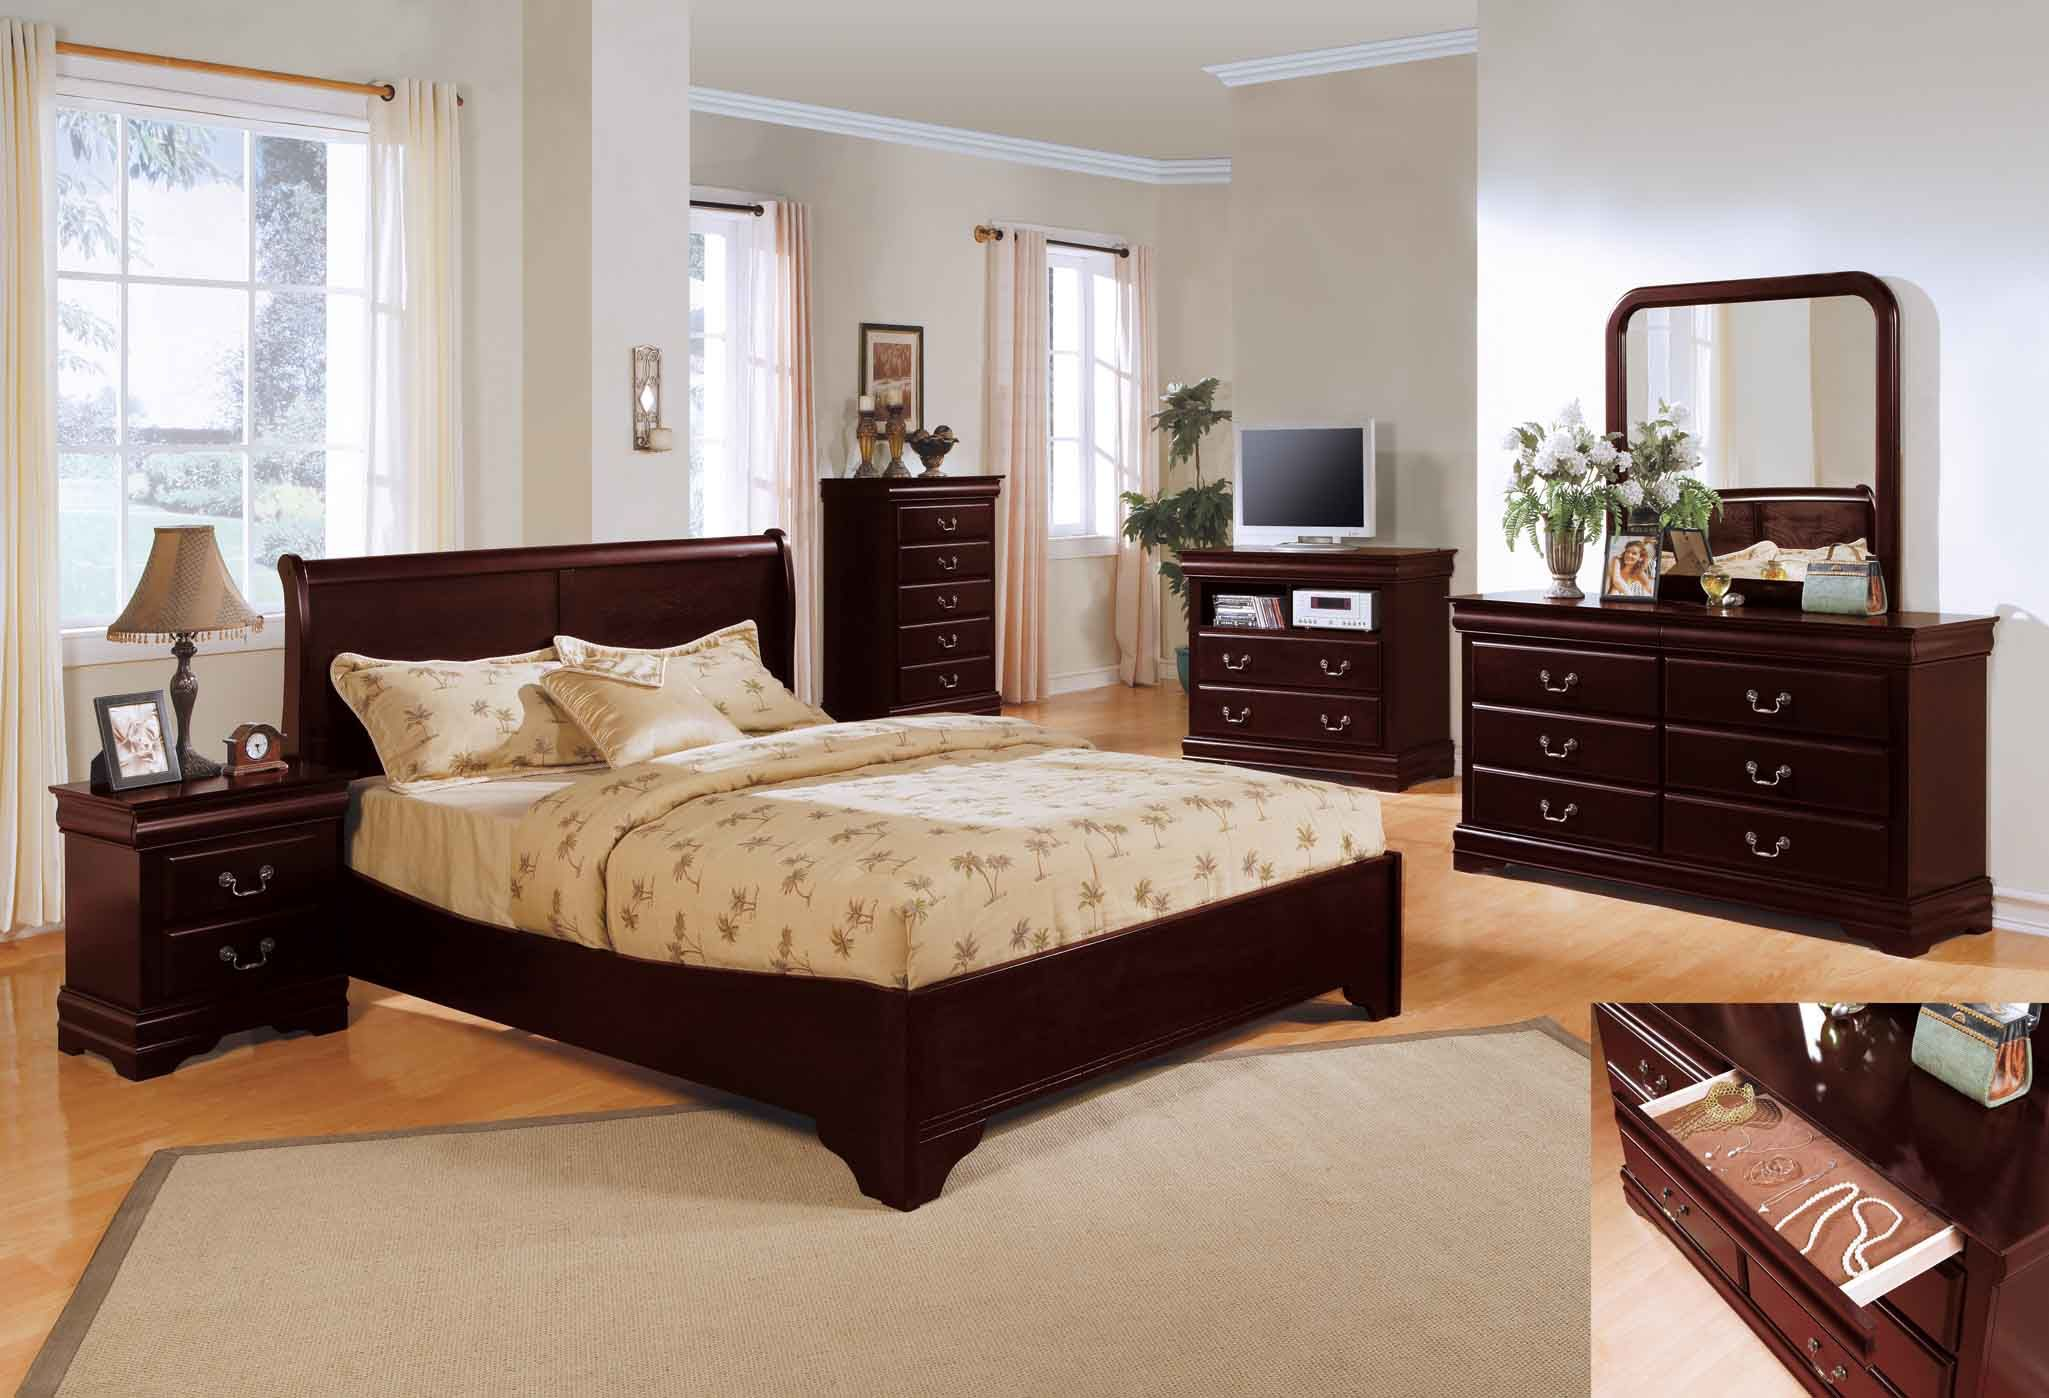 Bedroom decor bedroom decorating ideas with cherry furniture